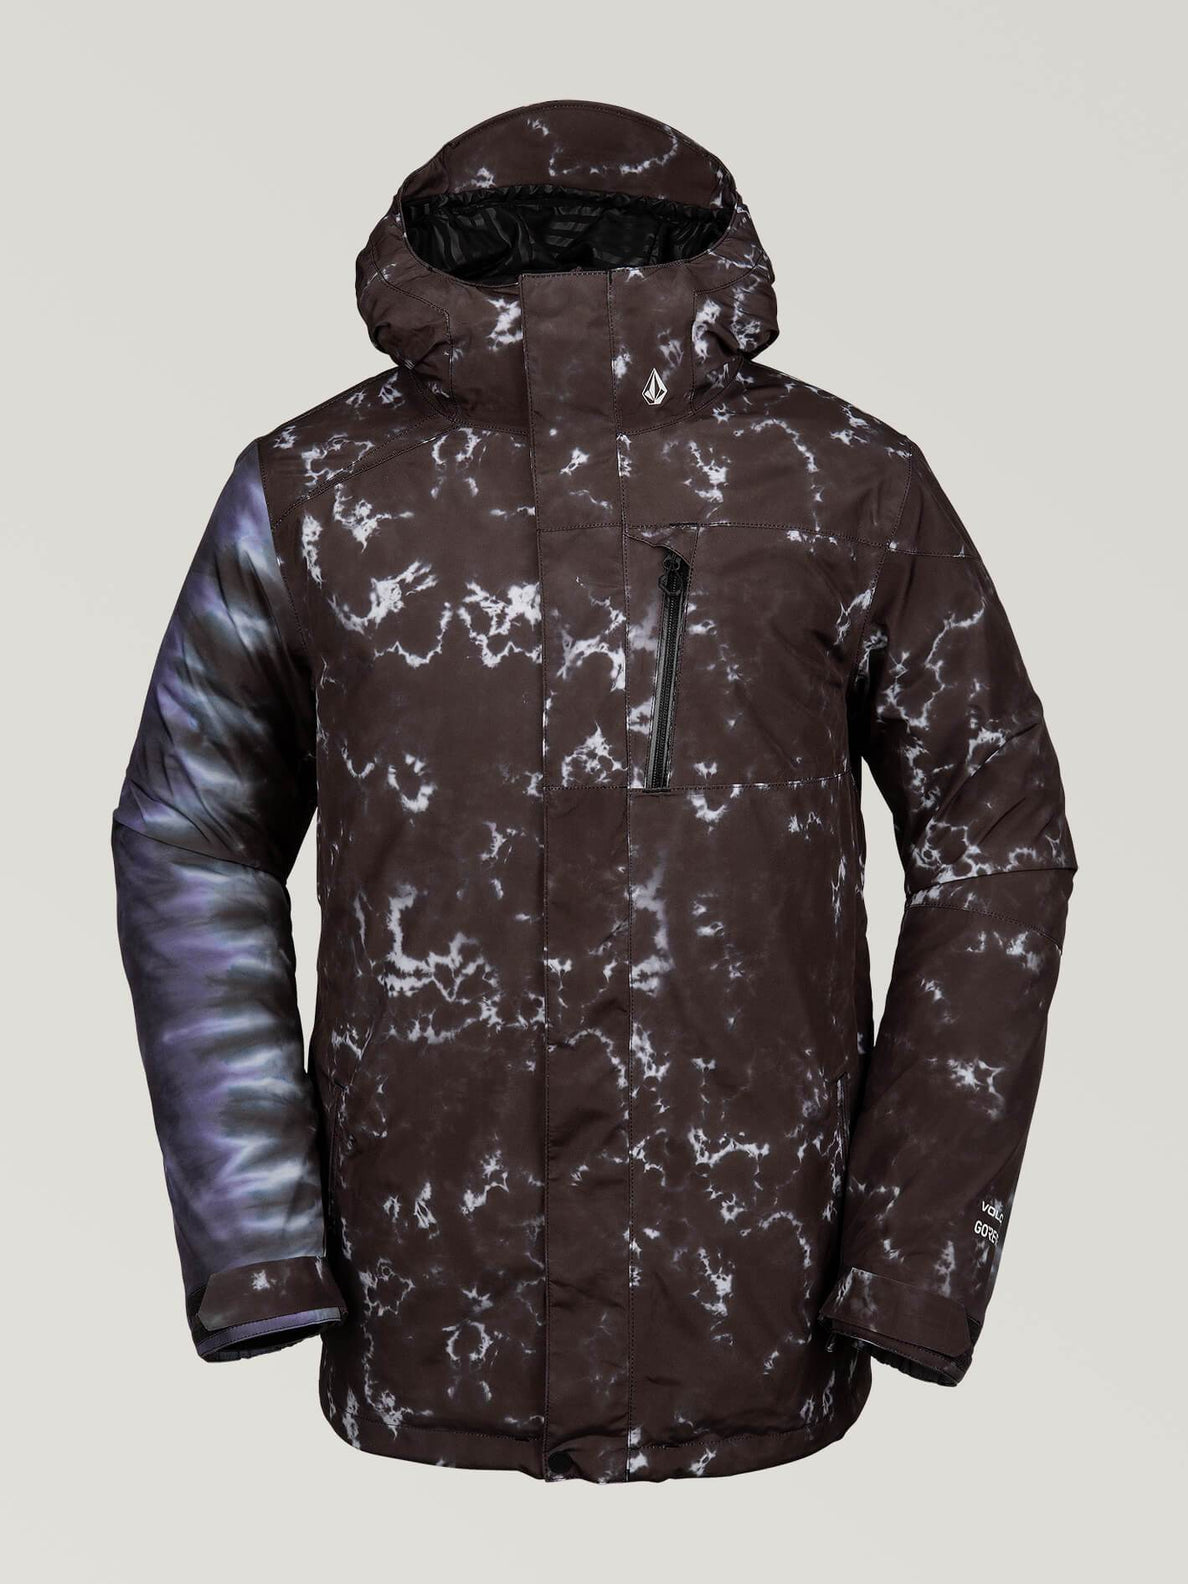 (LAST SEASON) L Gore-Tex Jacket - Black Print